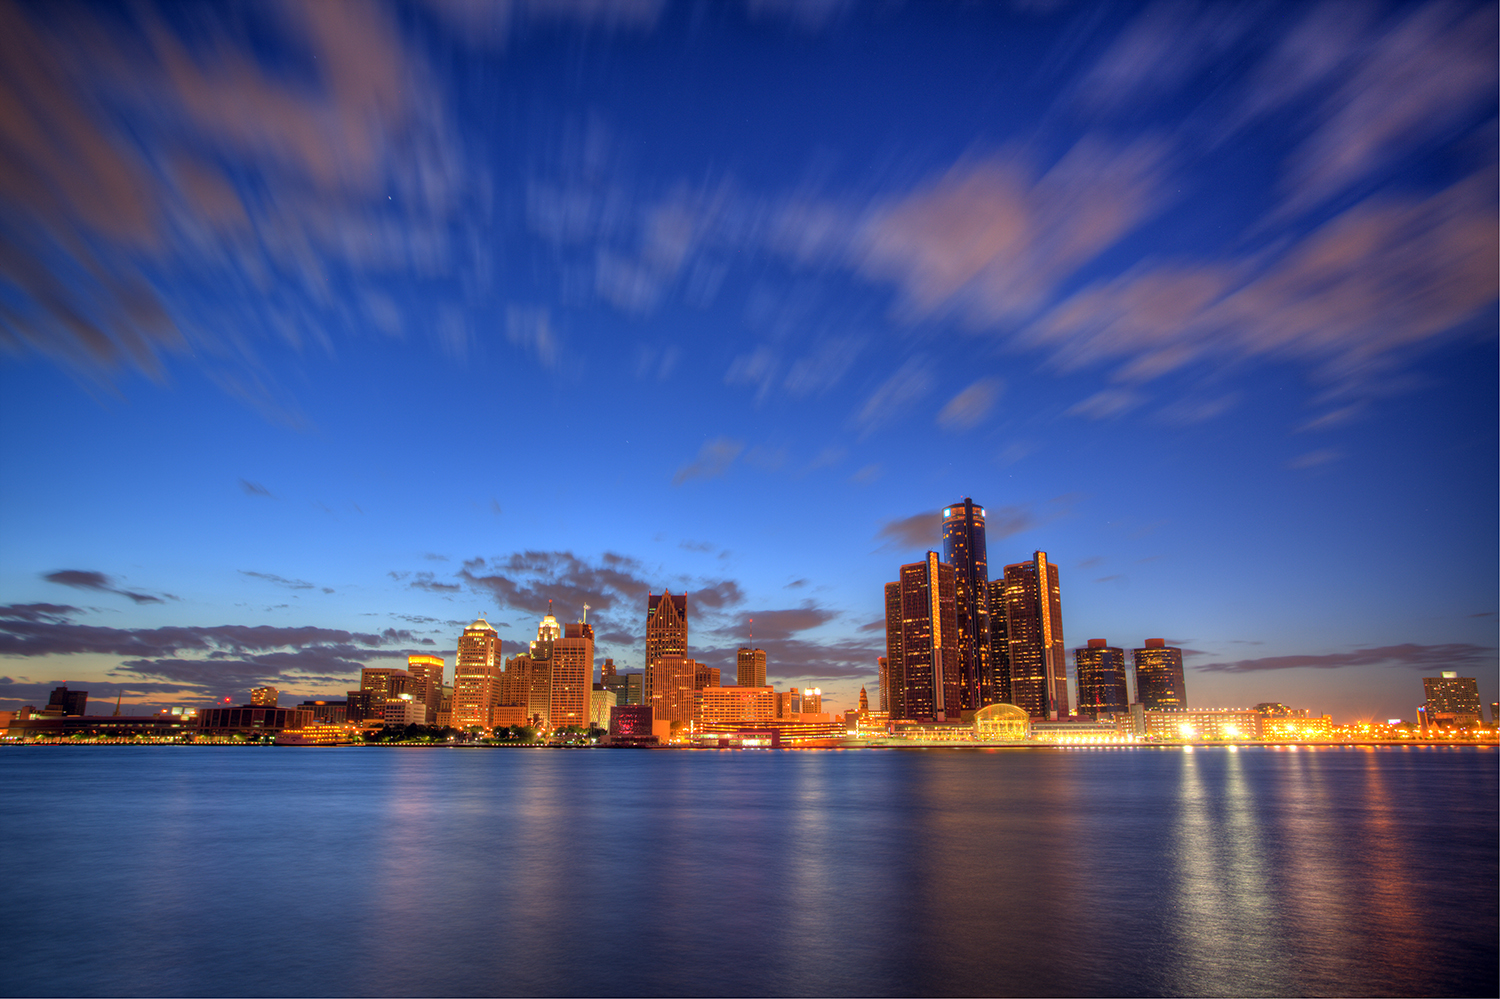 Detroit Skyline. Image credit: Andrew Langdal, Flickr